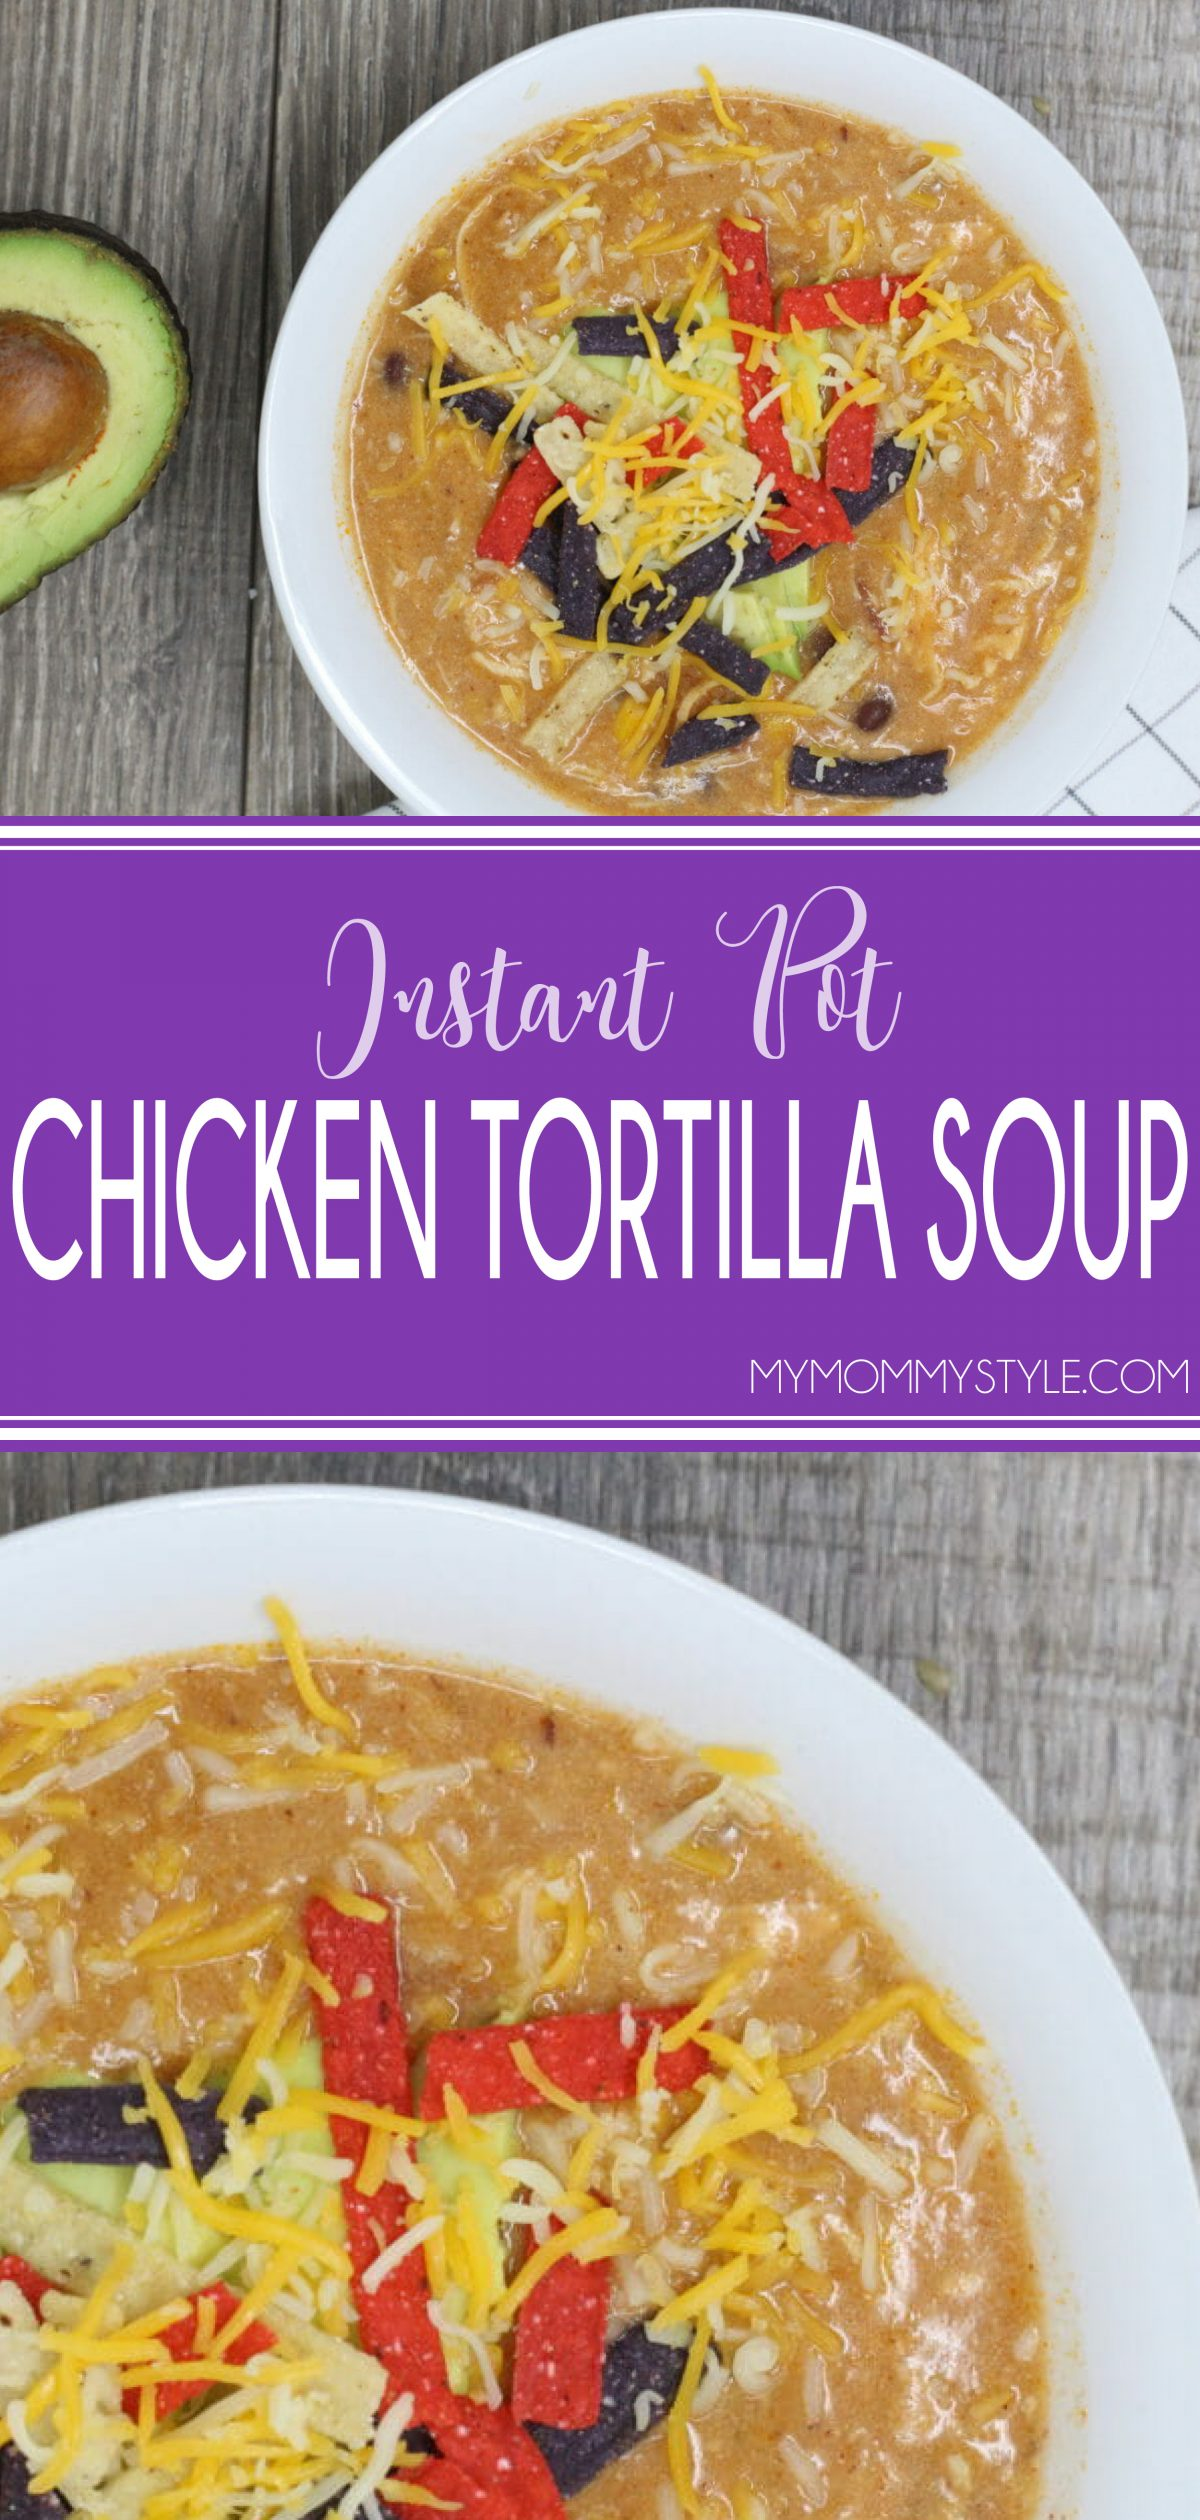 This Instant Pot chicken tortilla soup is so flavorful, and can be made from frozen chicken breasts in under 30 minutes! Cooking soup in the Instant Pot is a hidden secret via @mymommystyle